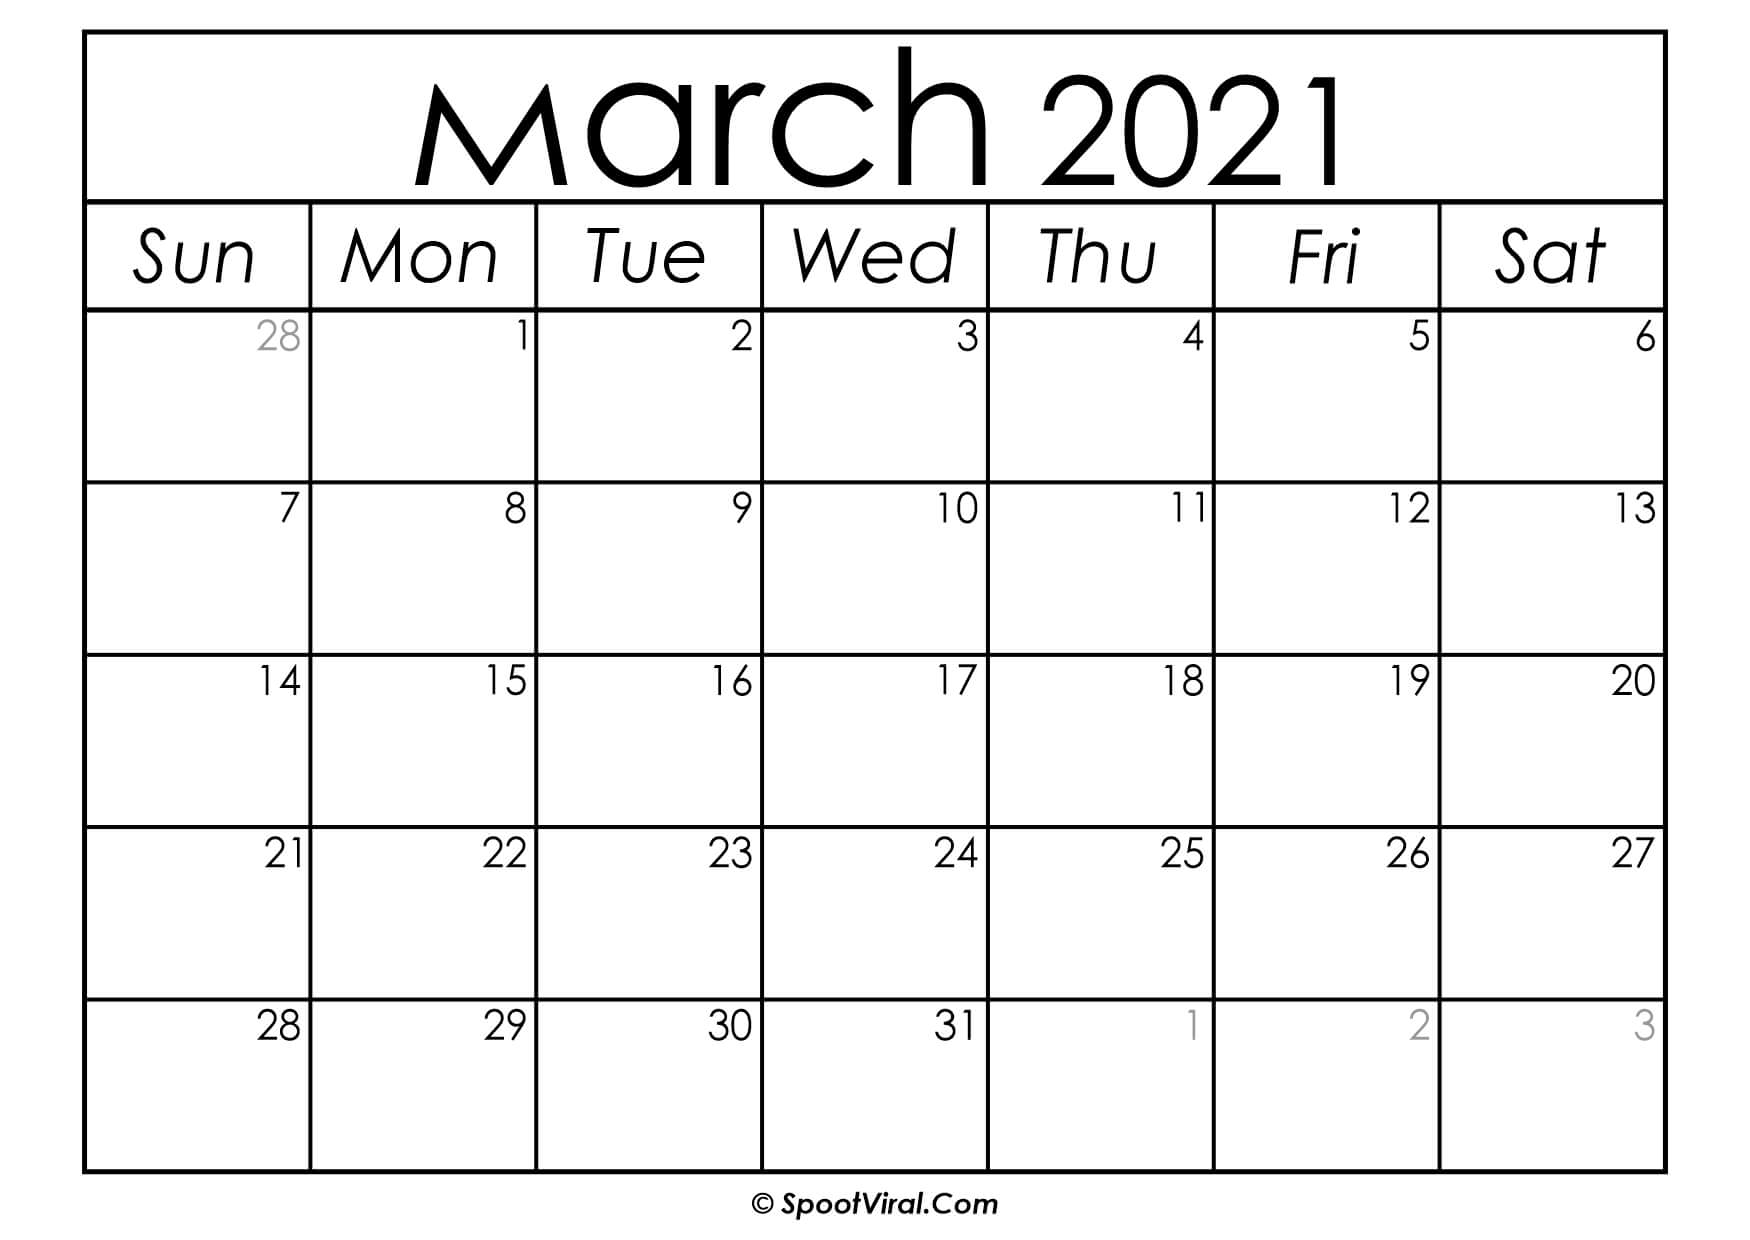 Blank March 2021 Calendar Printable - Latest Calendar ...